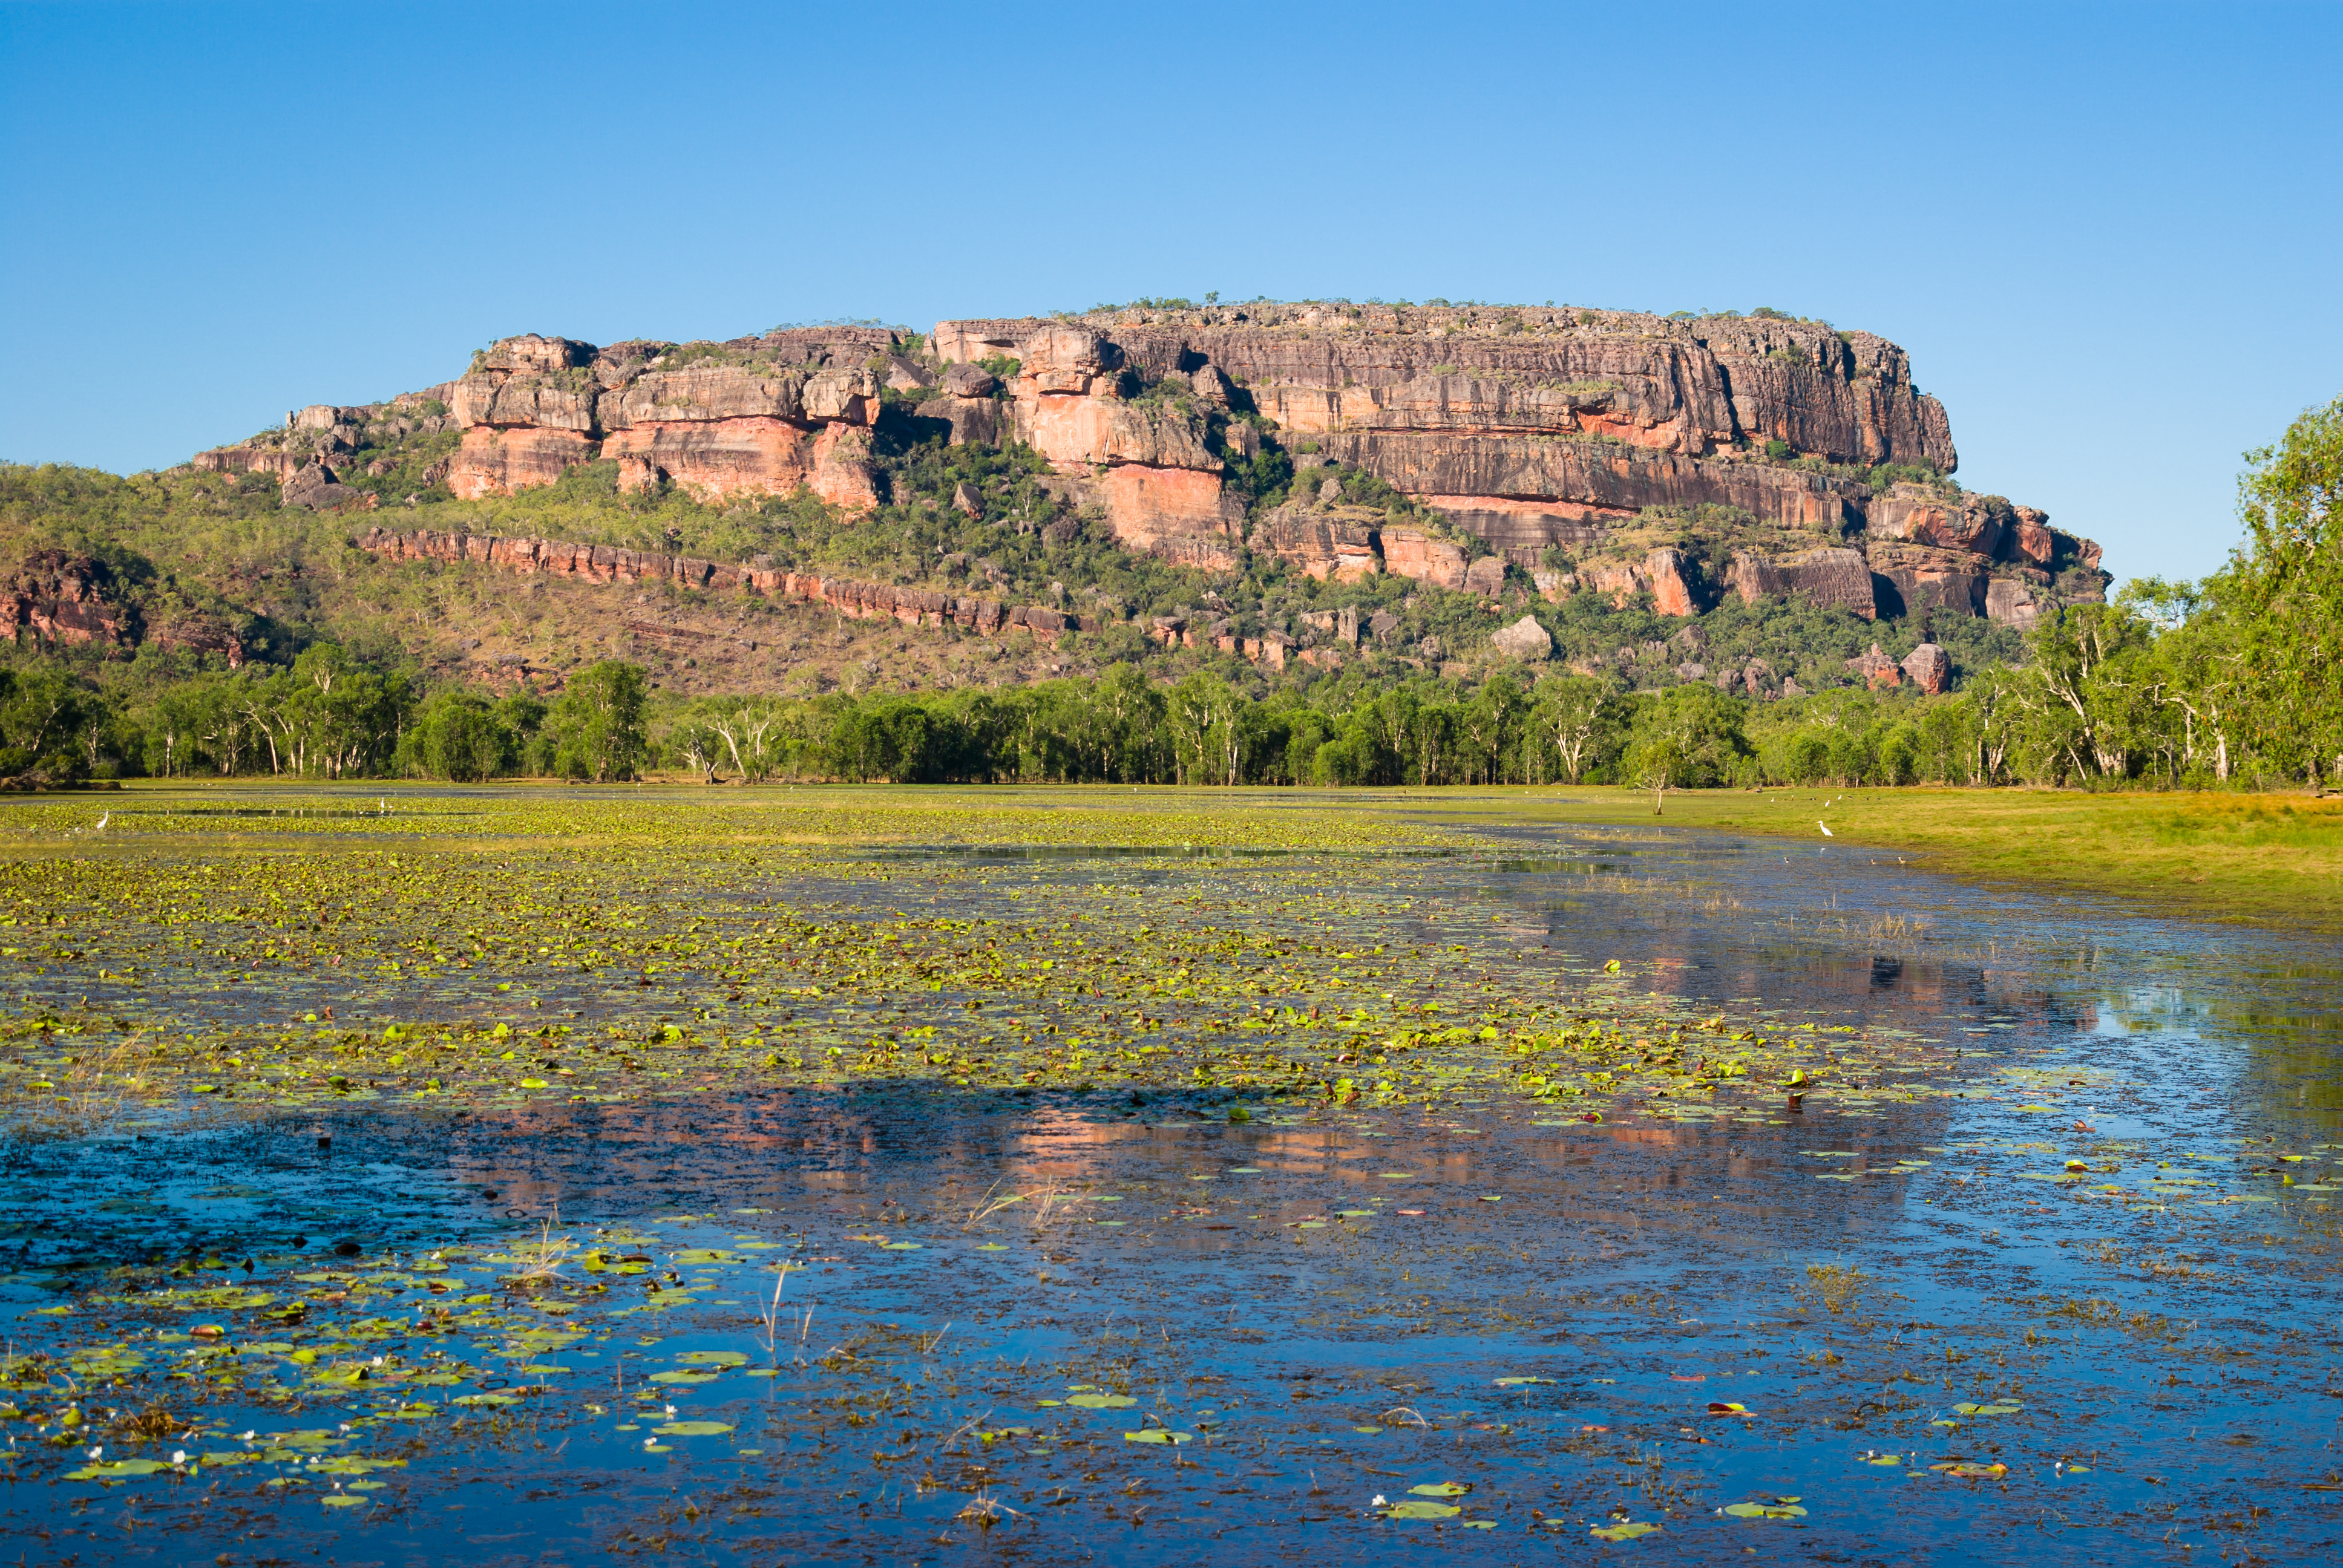 4wd camper hire - Kakadu National park